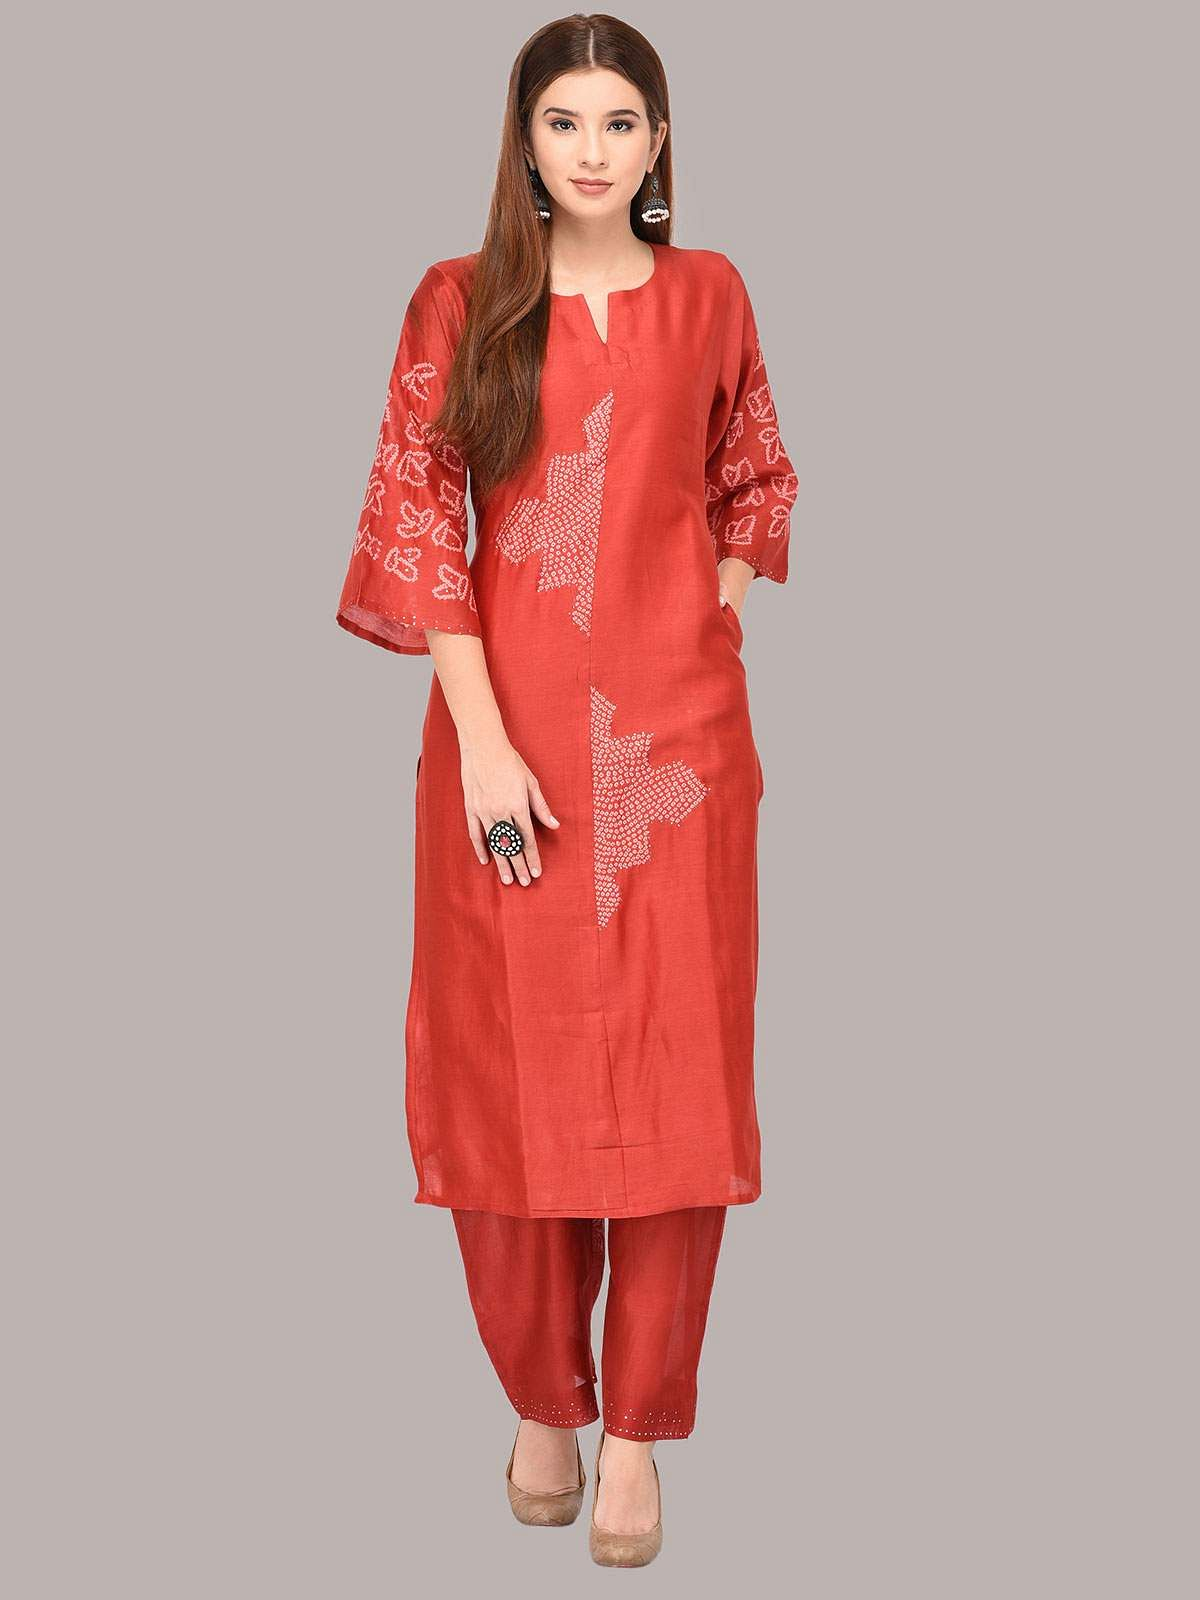 Indian August Women Fashion Clothing